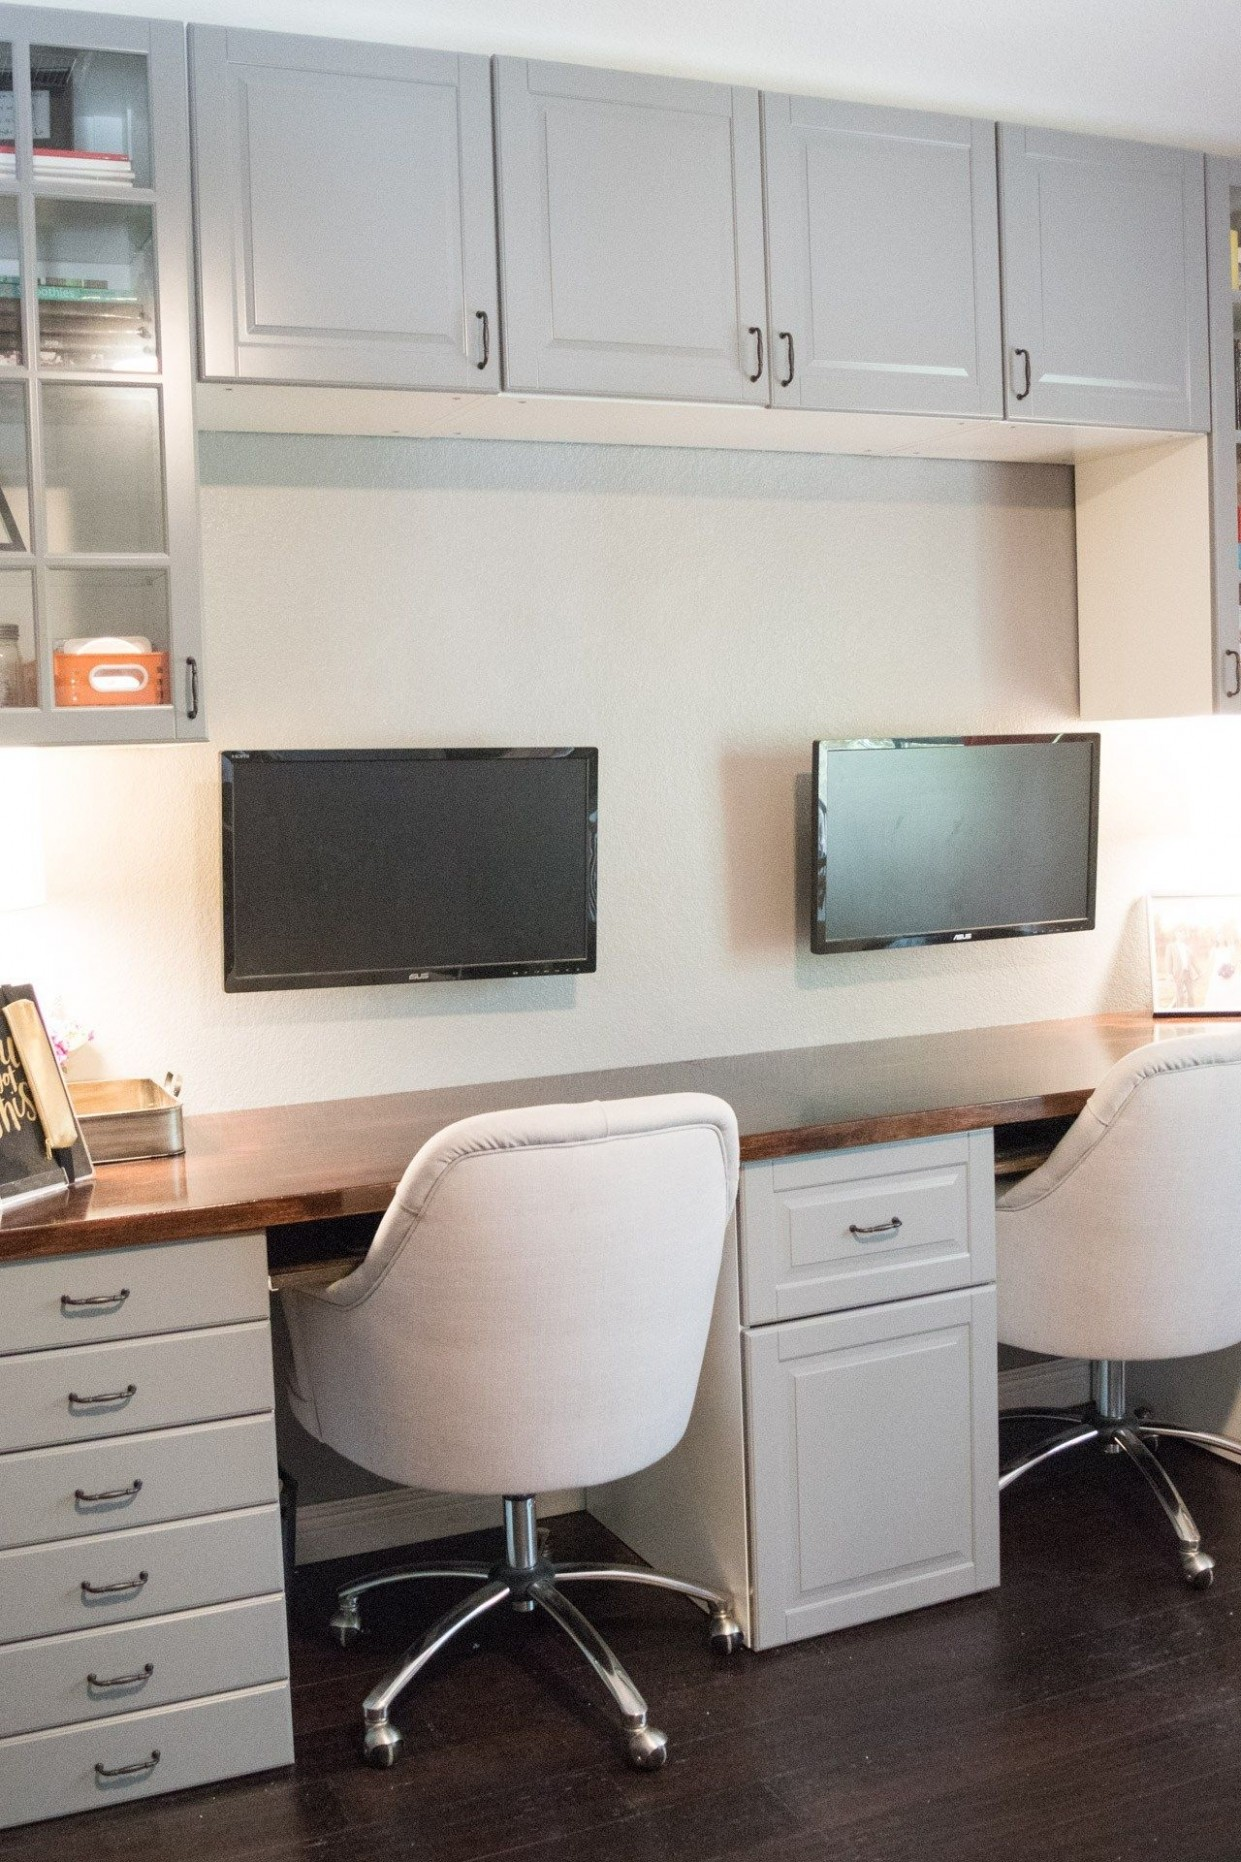 How To Make A Desk From Kitchen Cabinets: Part Two  DIY Without  - Home Office Ideas With Kitchen Cabinets